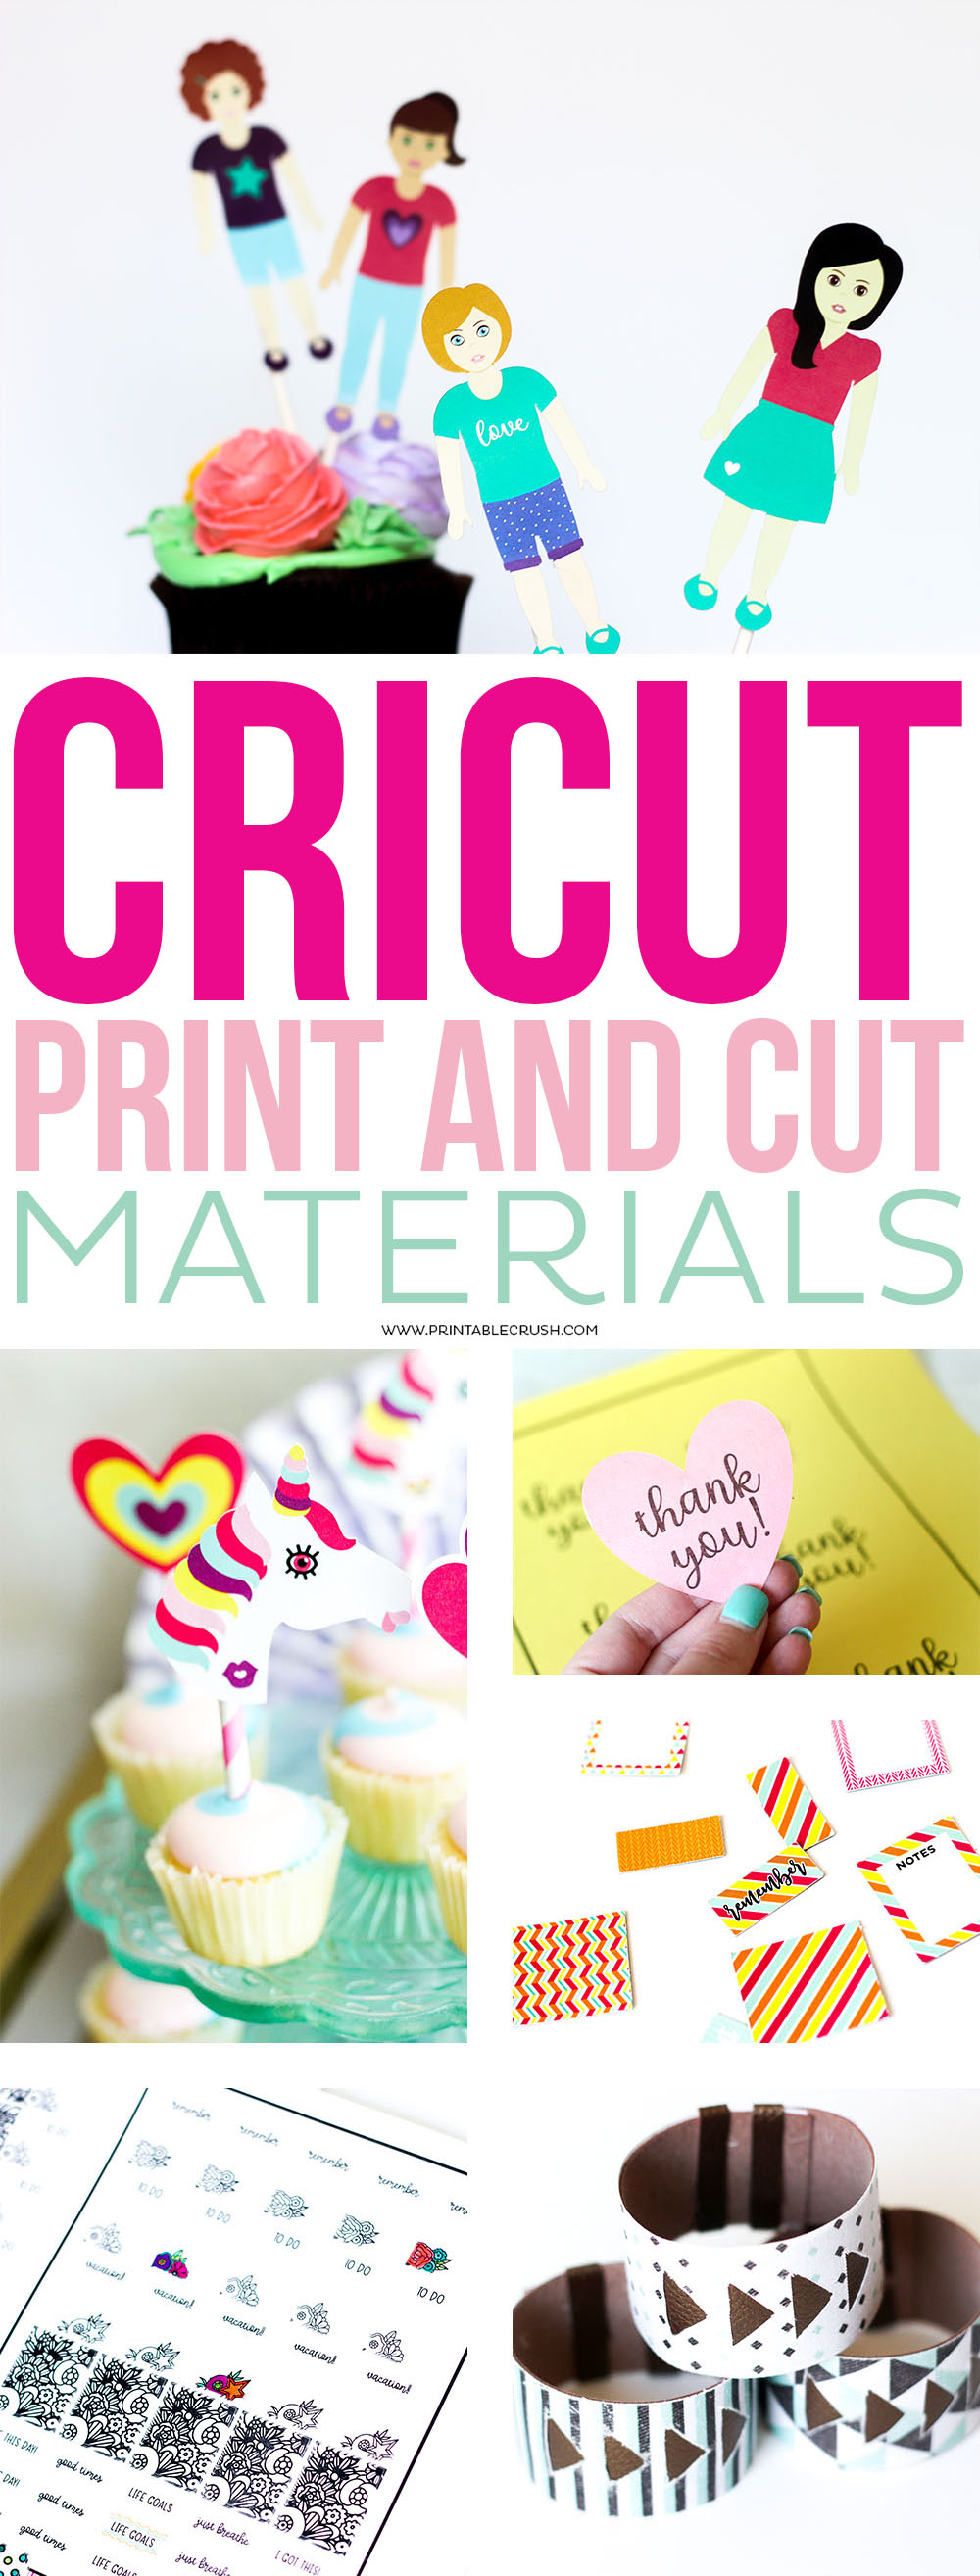 There are so many Cricut Print and Cut Materials you need to explore! This is such a great feature and will make you love your Cricut Maker even more!